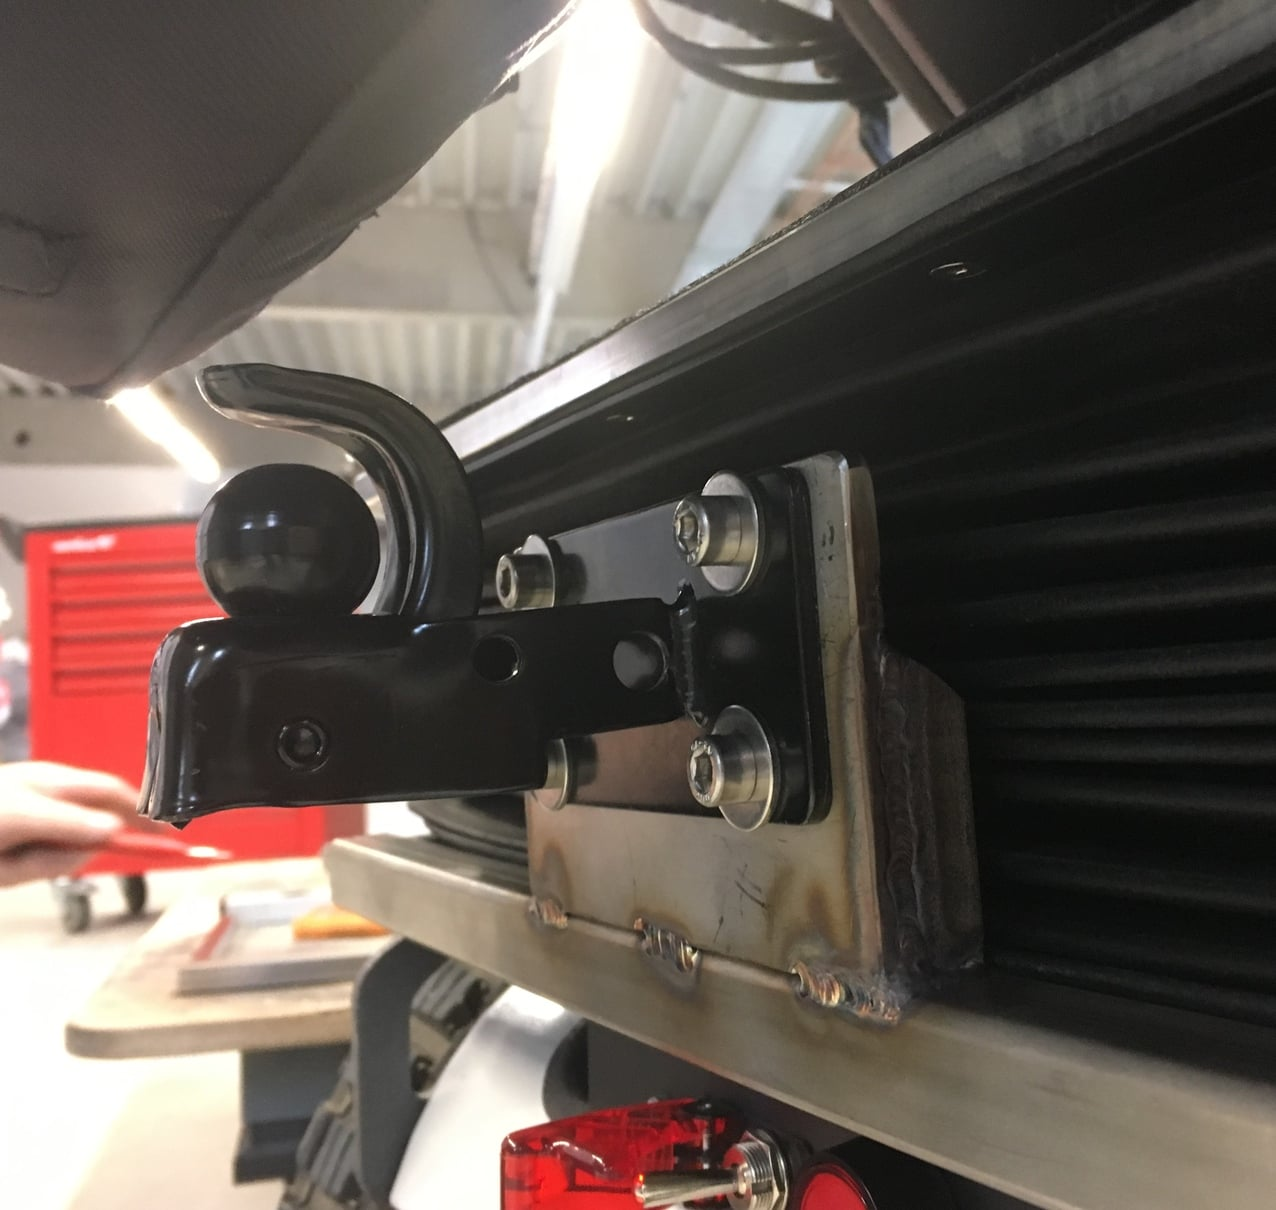 Mounting the running board trailer on the electric vehicle